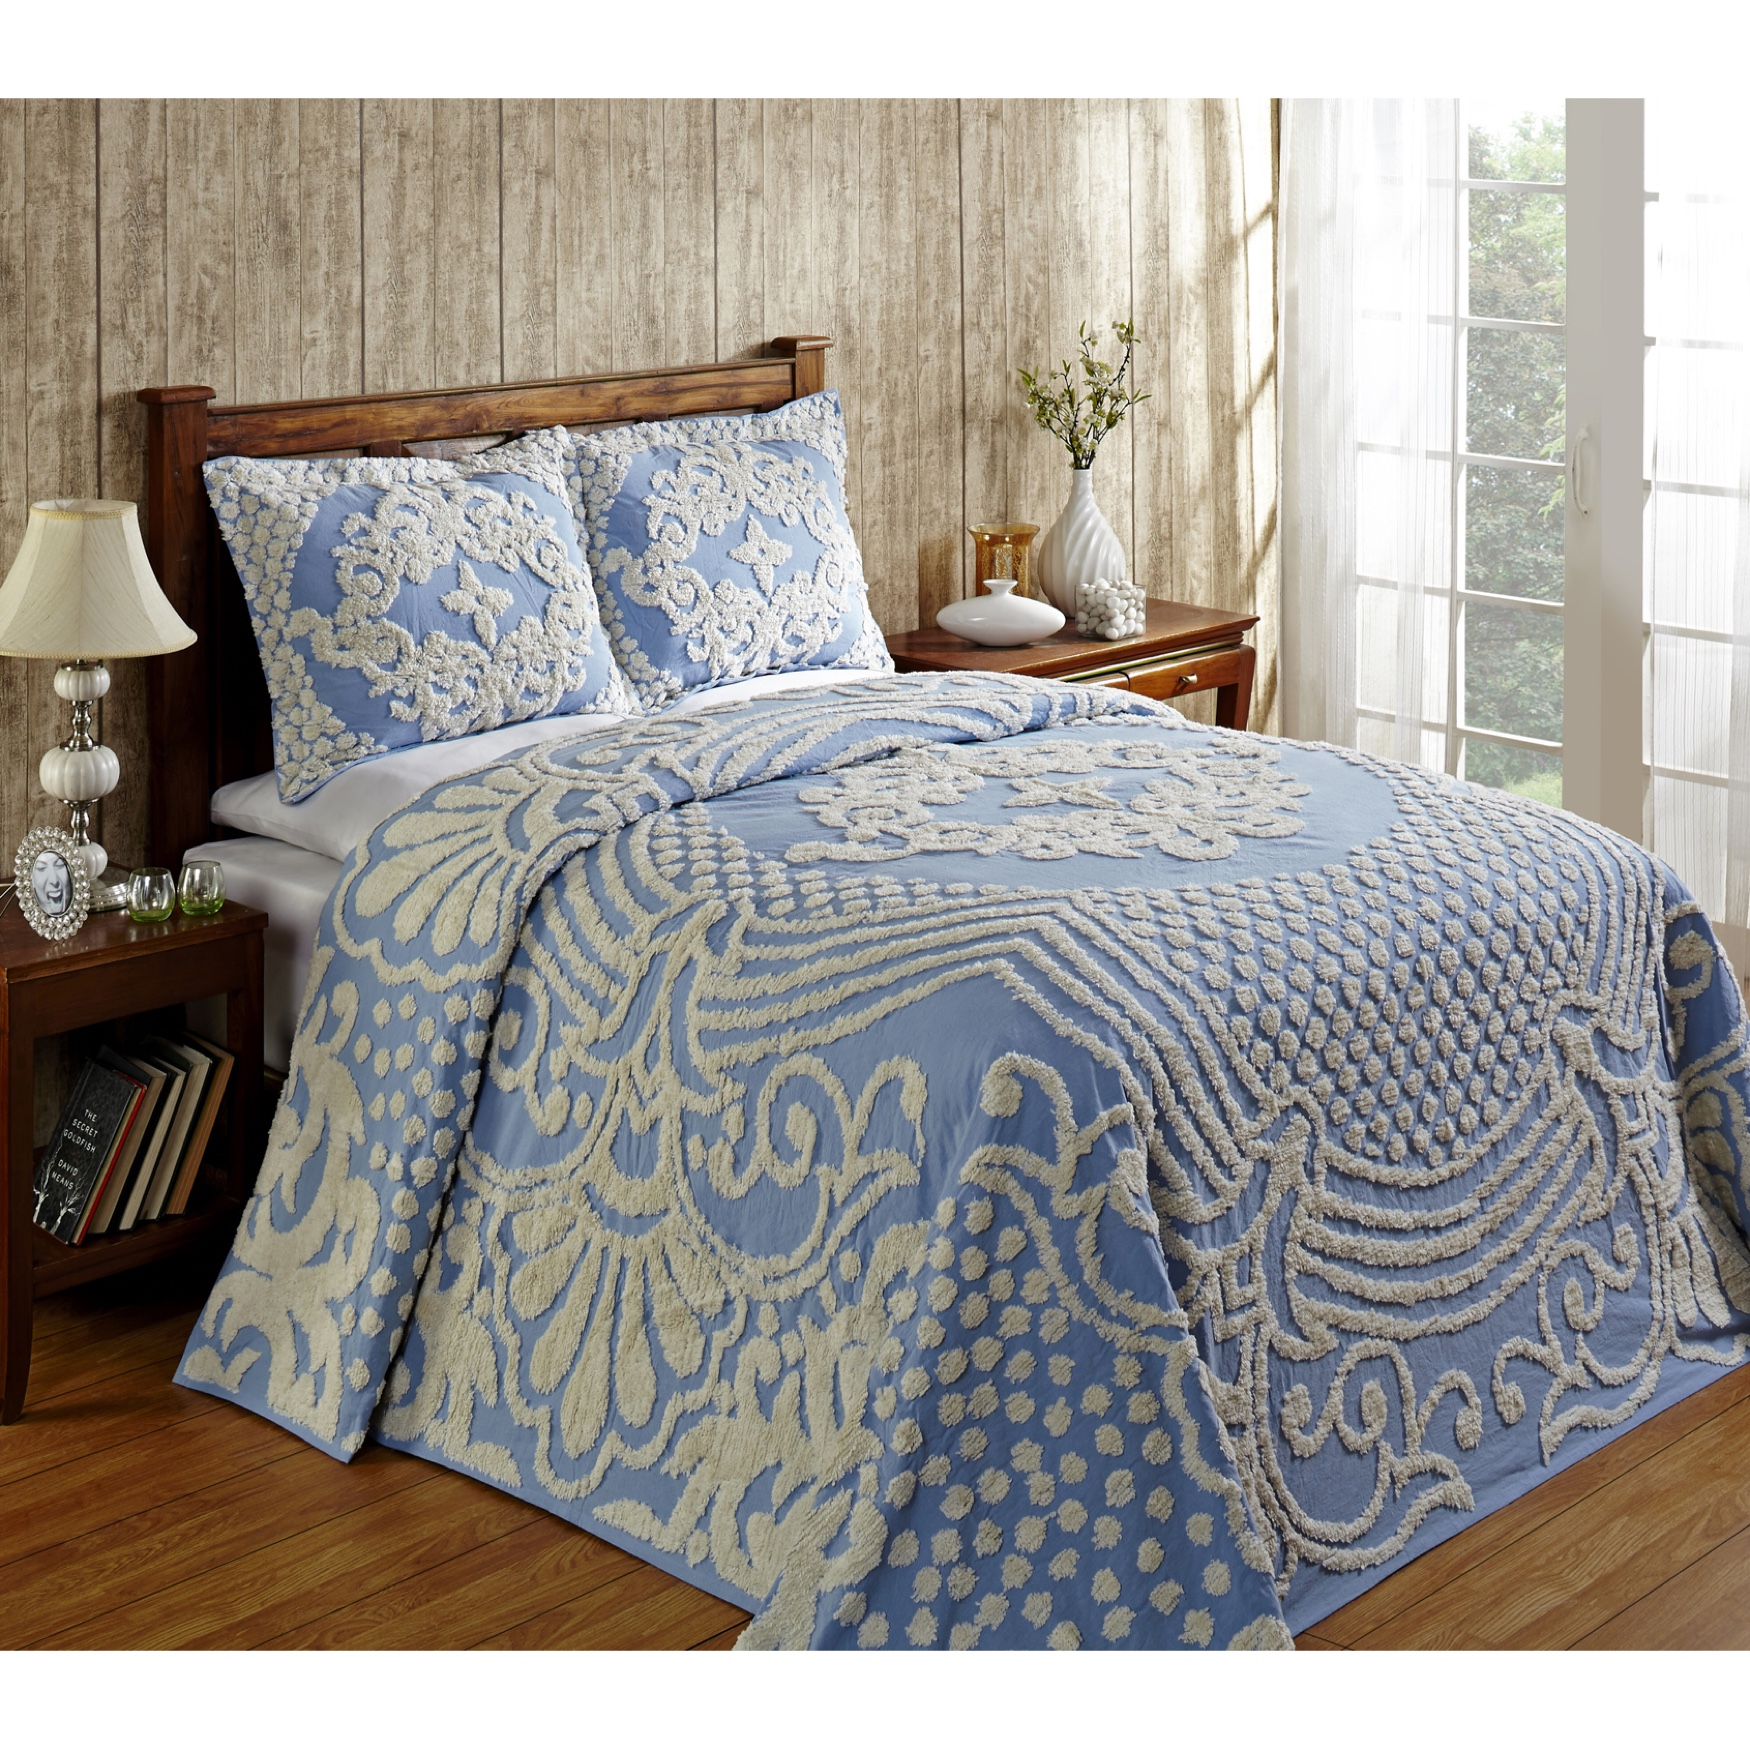 Florence Collection Tufted Chenille Bedspread by Better Trends,